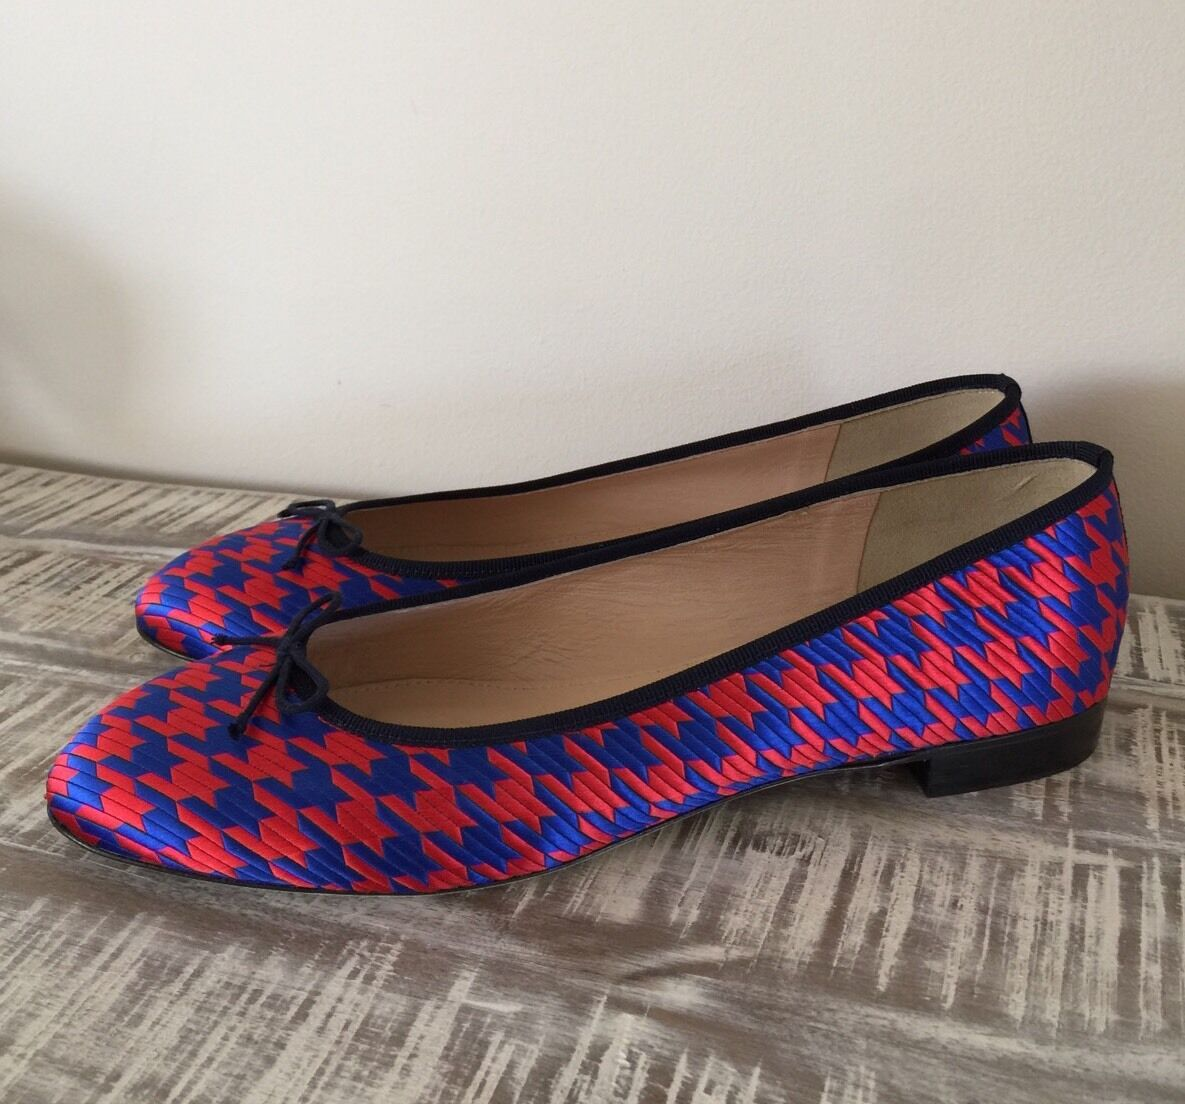 JCrew  168 Kiki Ballet Flats in Houndstooth Jacquard 10.5 Red Blue F8505 NEW